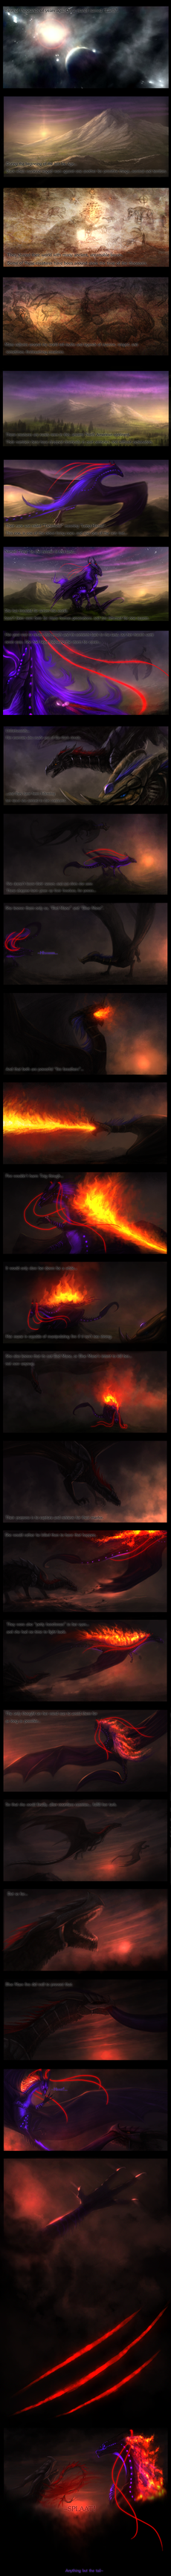 Lost Dragons: Prologue Part 1 by Enigmatic-Ki